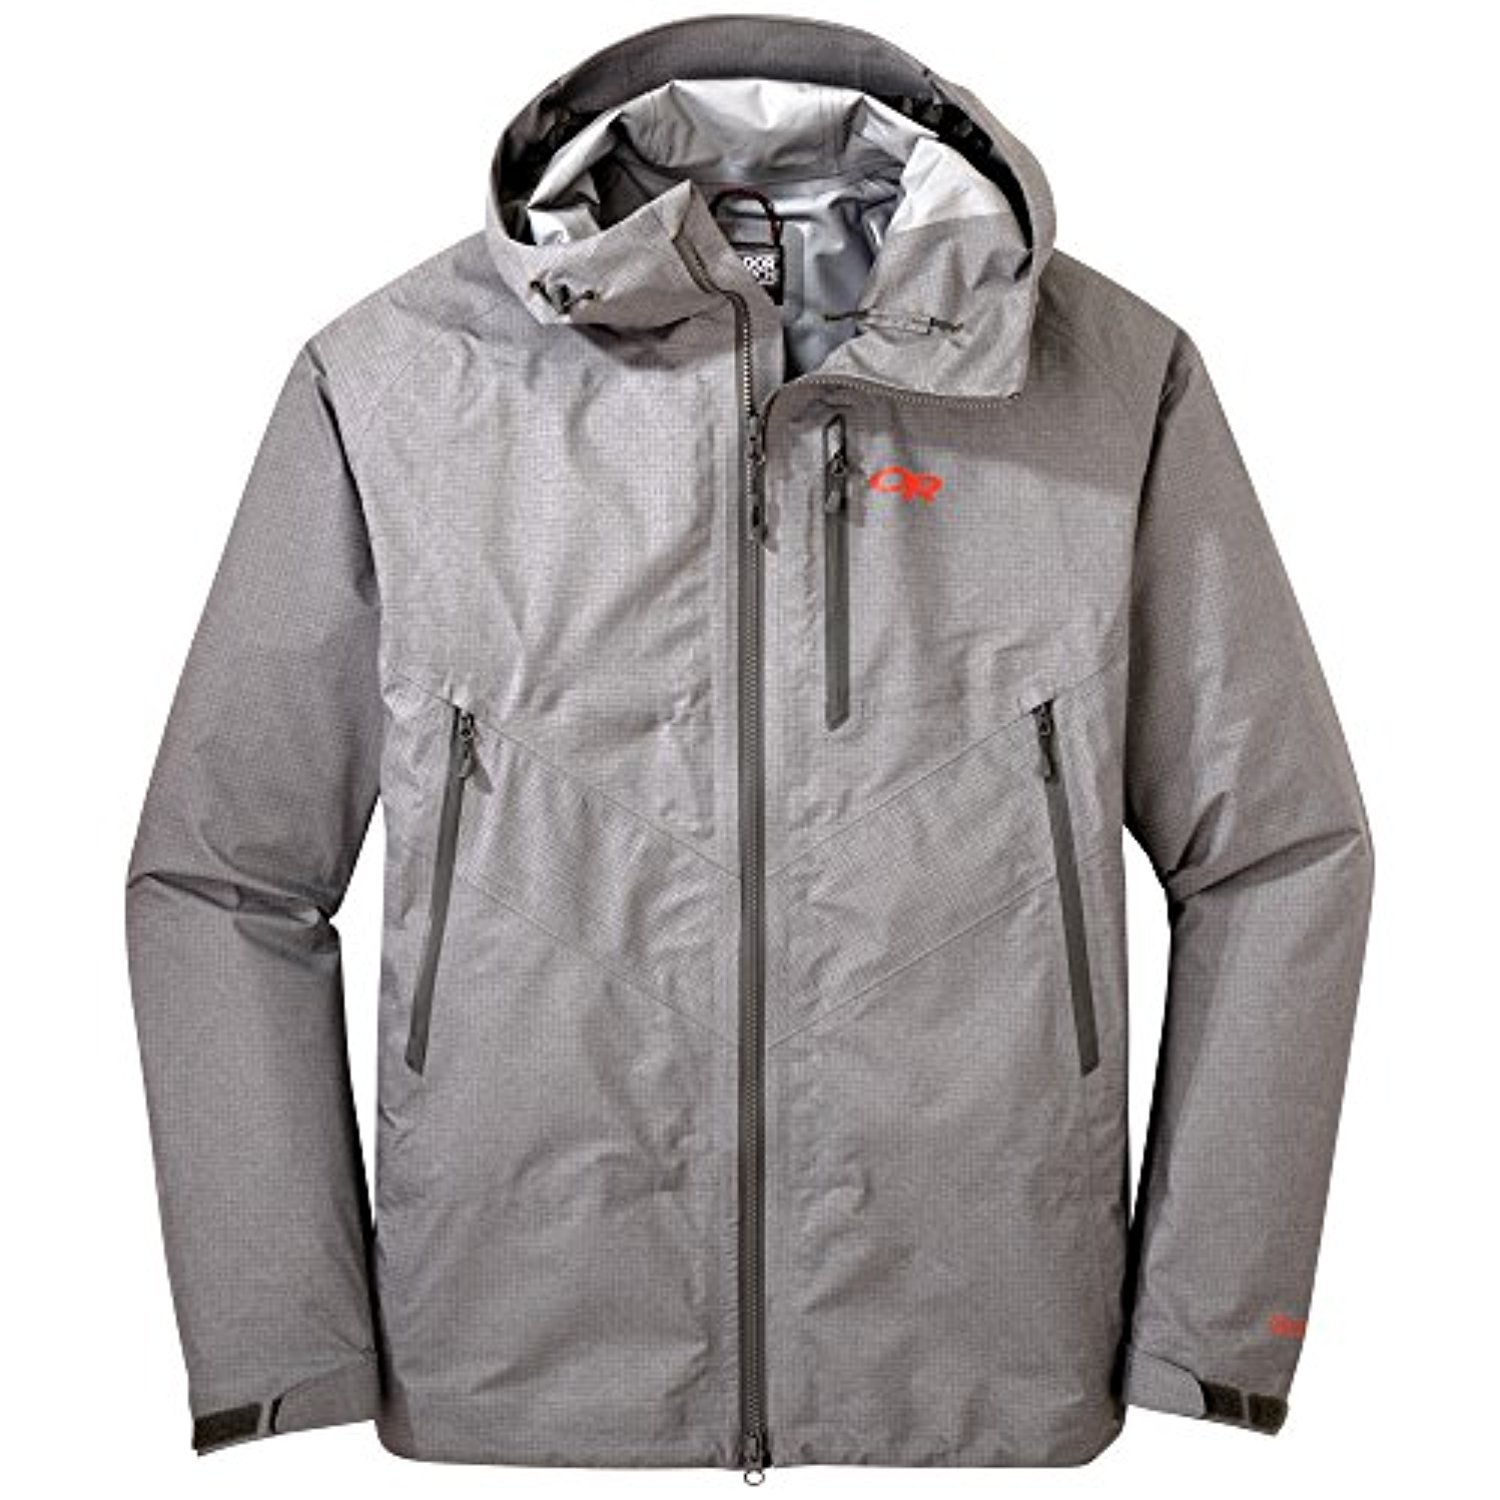 Outdoor Research, USA OUTERWEAR メンズ B07BDQ39S9  チャコールグレー Small